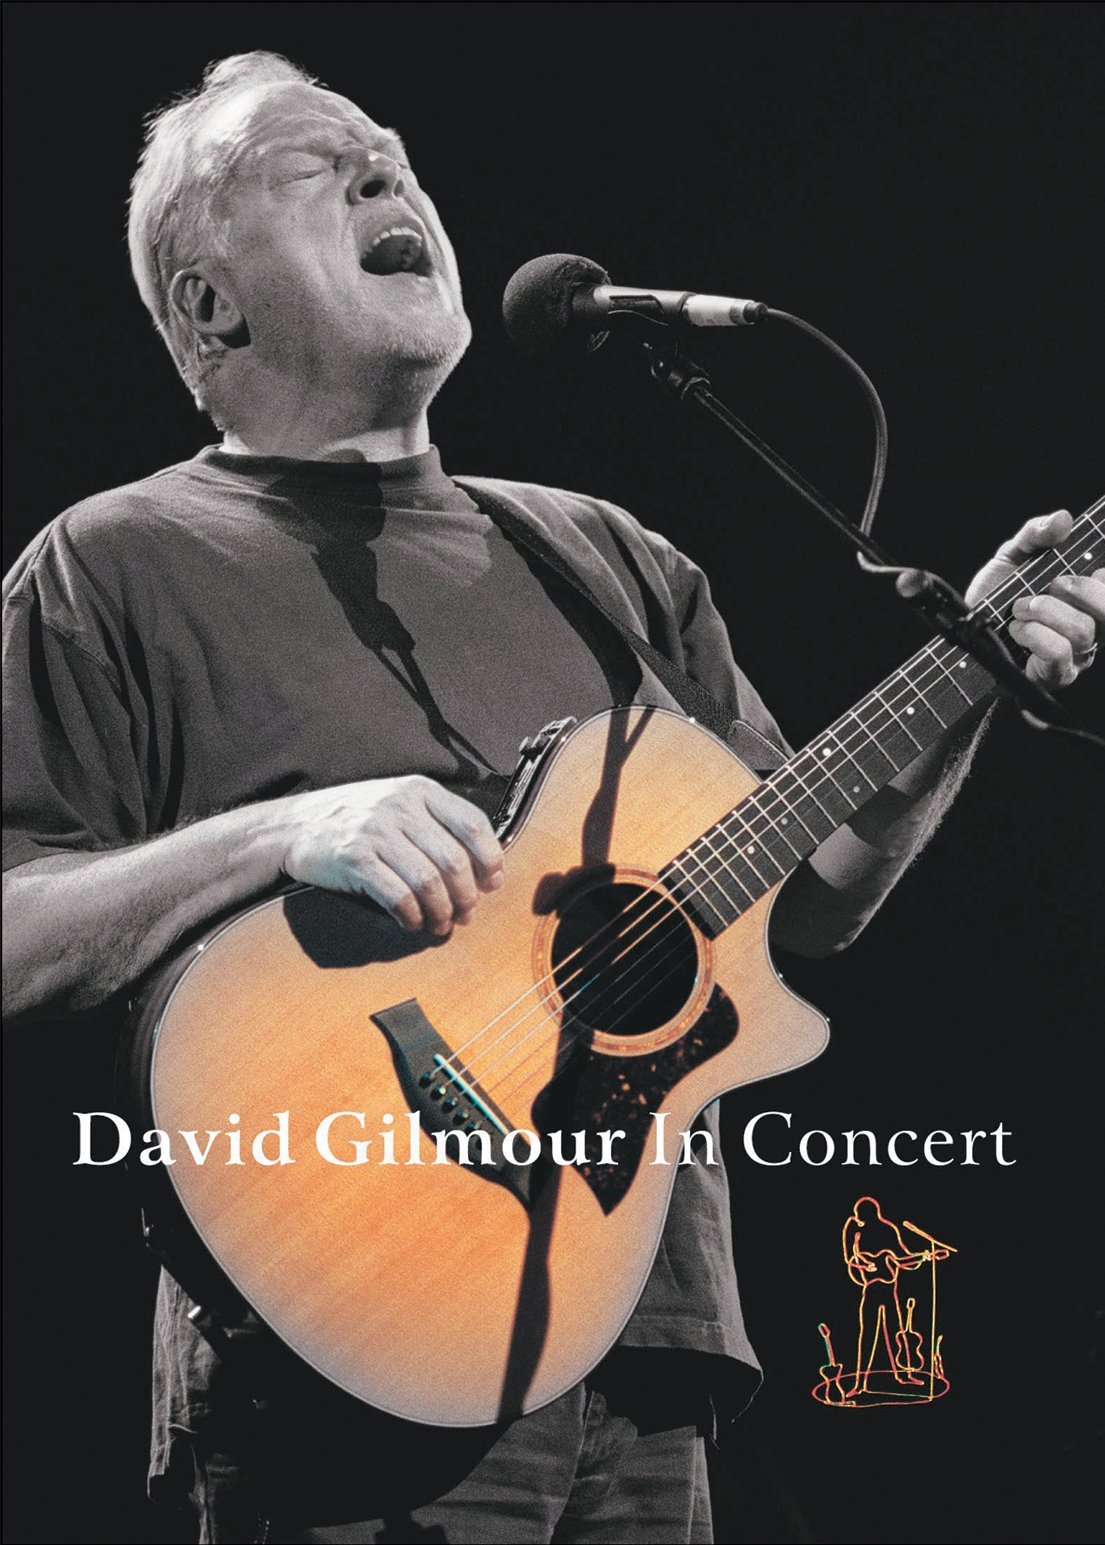 David Gilmour in Concert - Live at Robert Wyatt's Meltdown